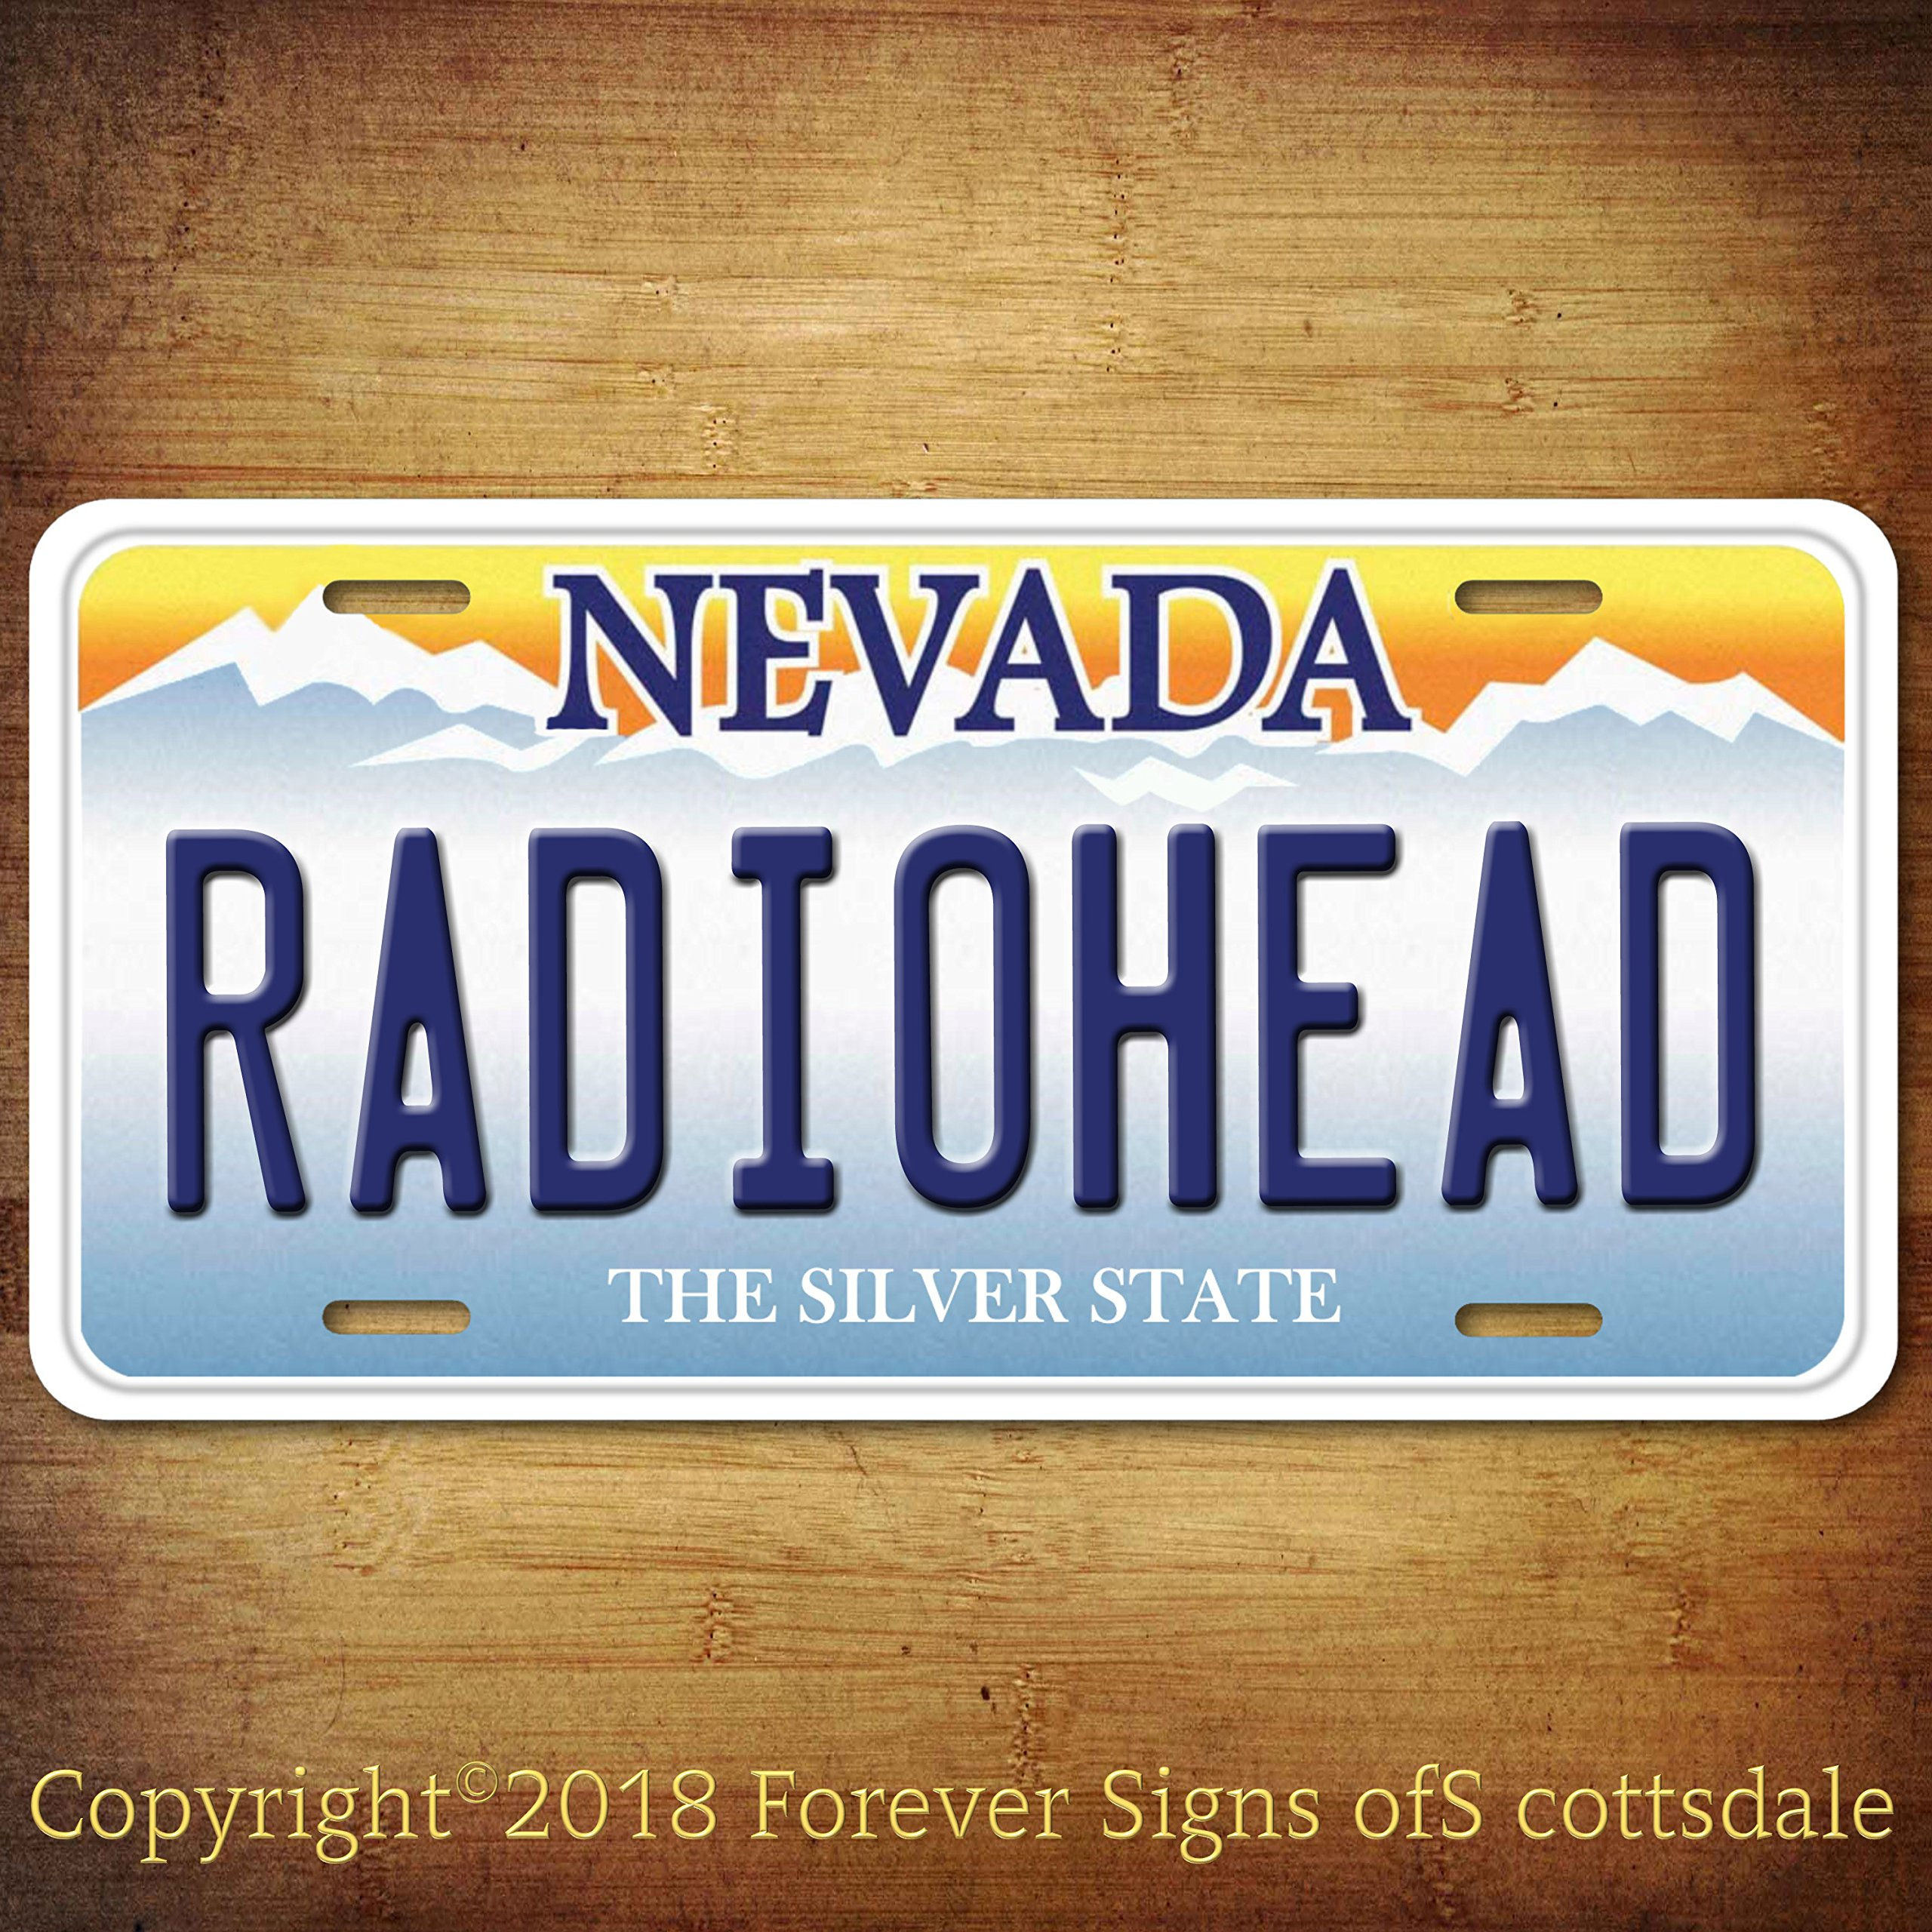 Radiohead Rock Band Nevada Aluminum Vanity License Plate Tag by Forever Signs Of Scottsdale (Image #1)